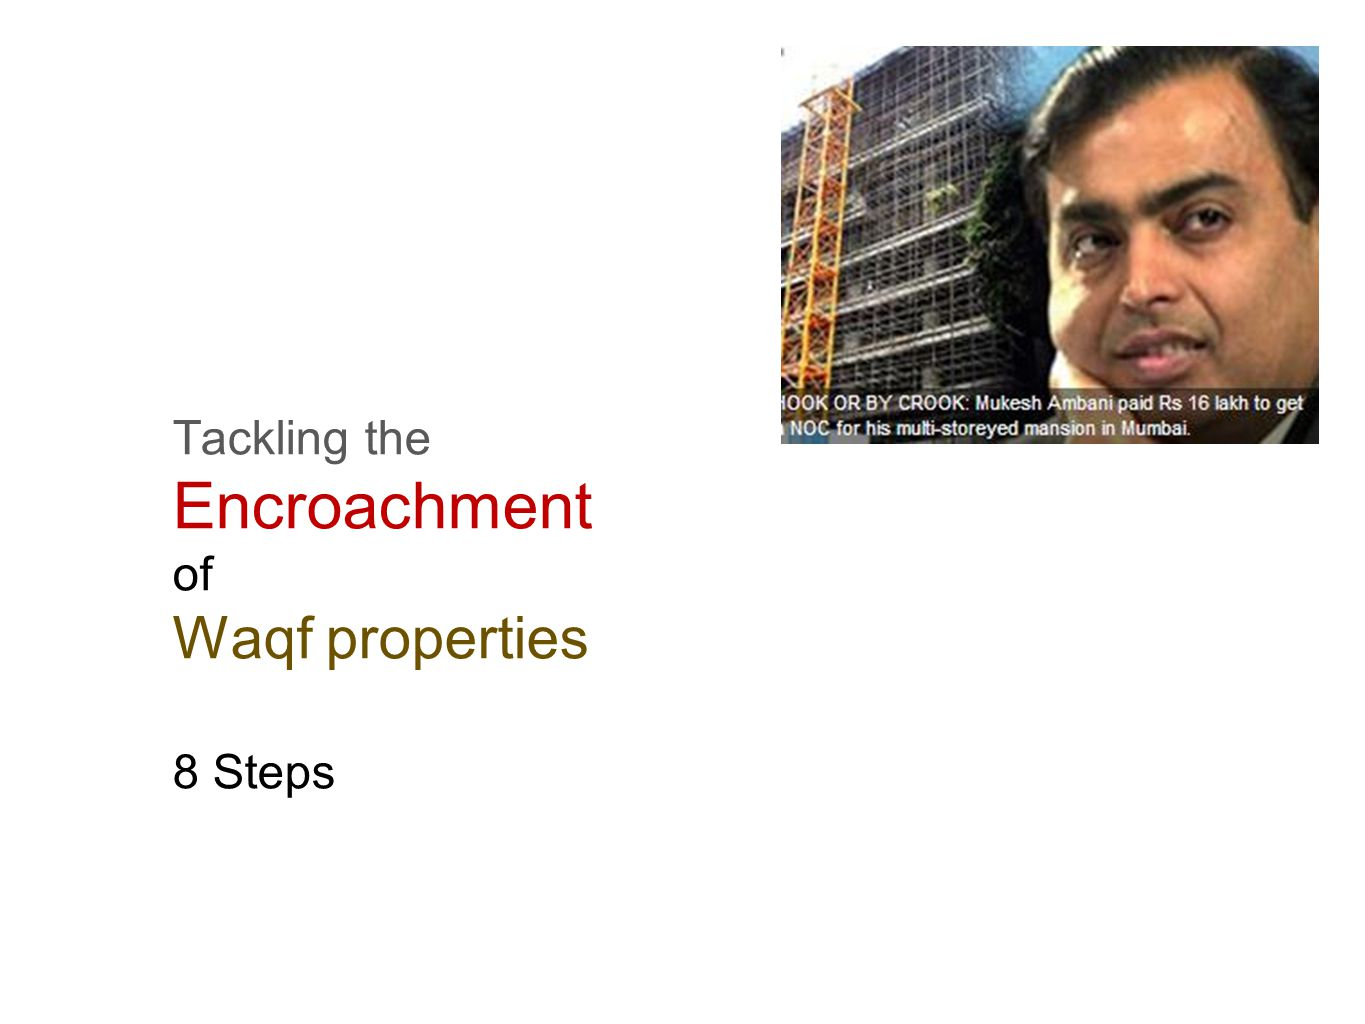 Tackling the Encroachment of Waqf properties 8 Steps